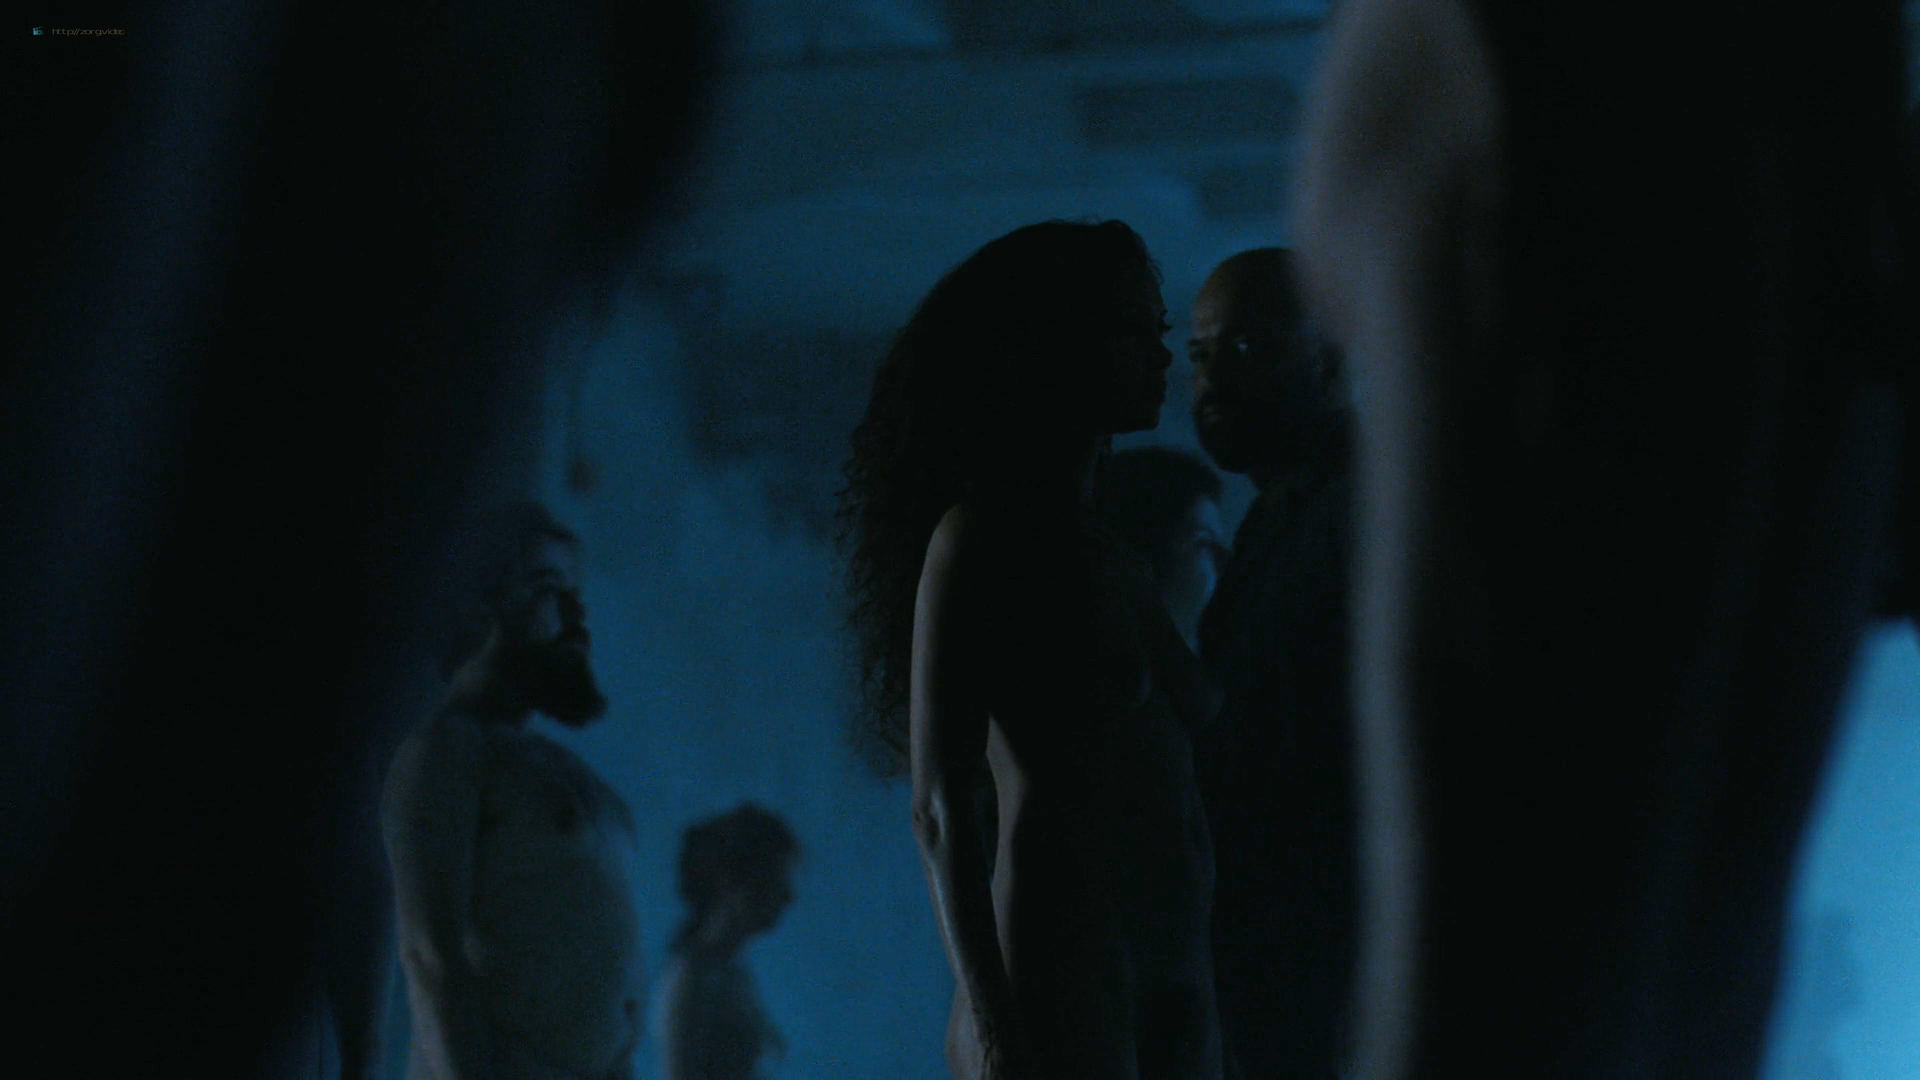 Thandie Newton nude others nude full frontal - Westworld (2020) s3e2 HD 1080p